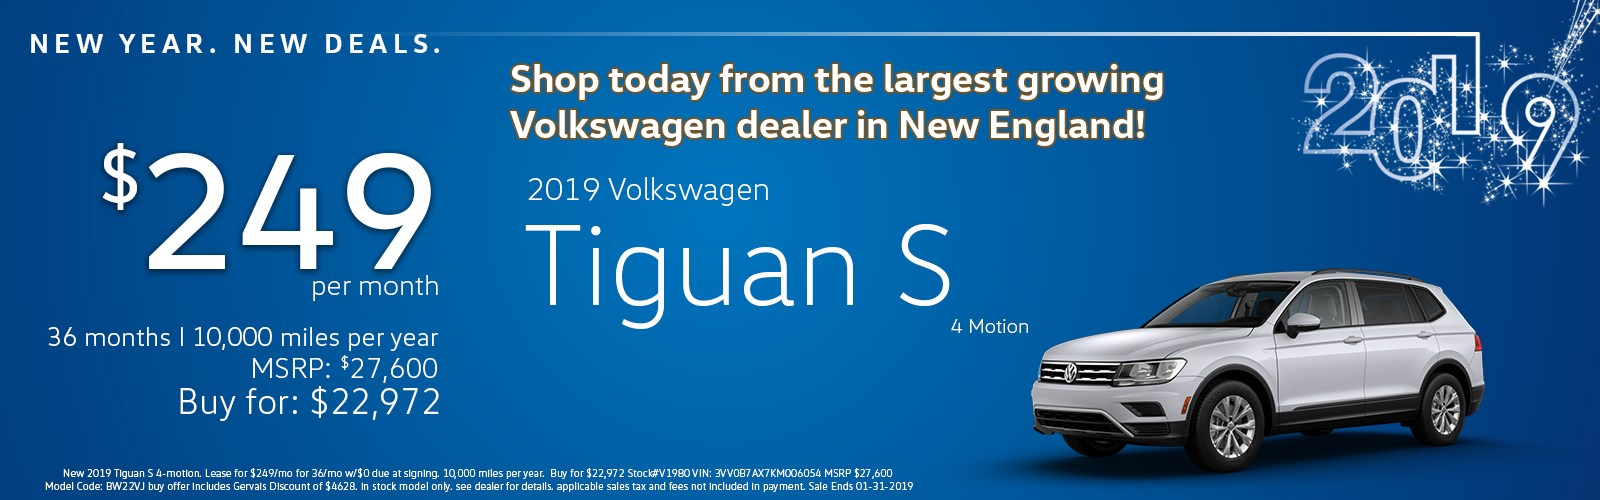 New Vw Tiguan For Sale In Lowell Ma Near Andover